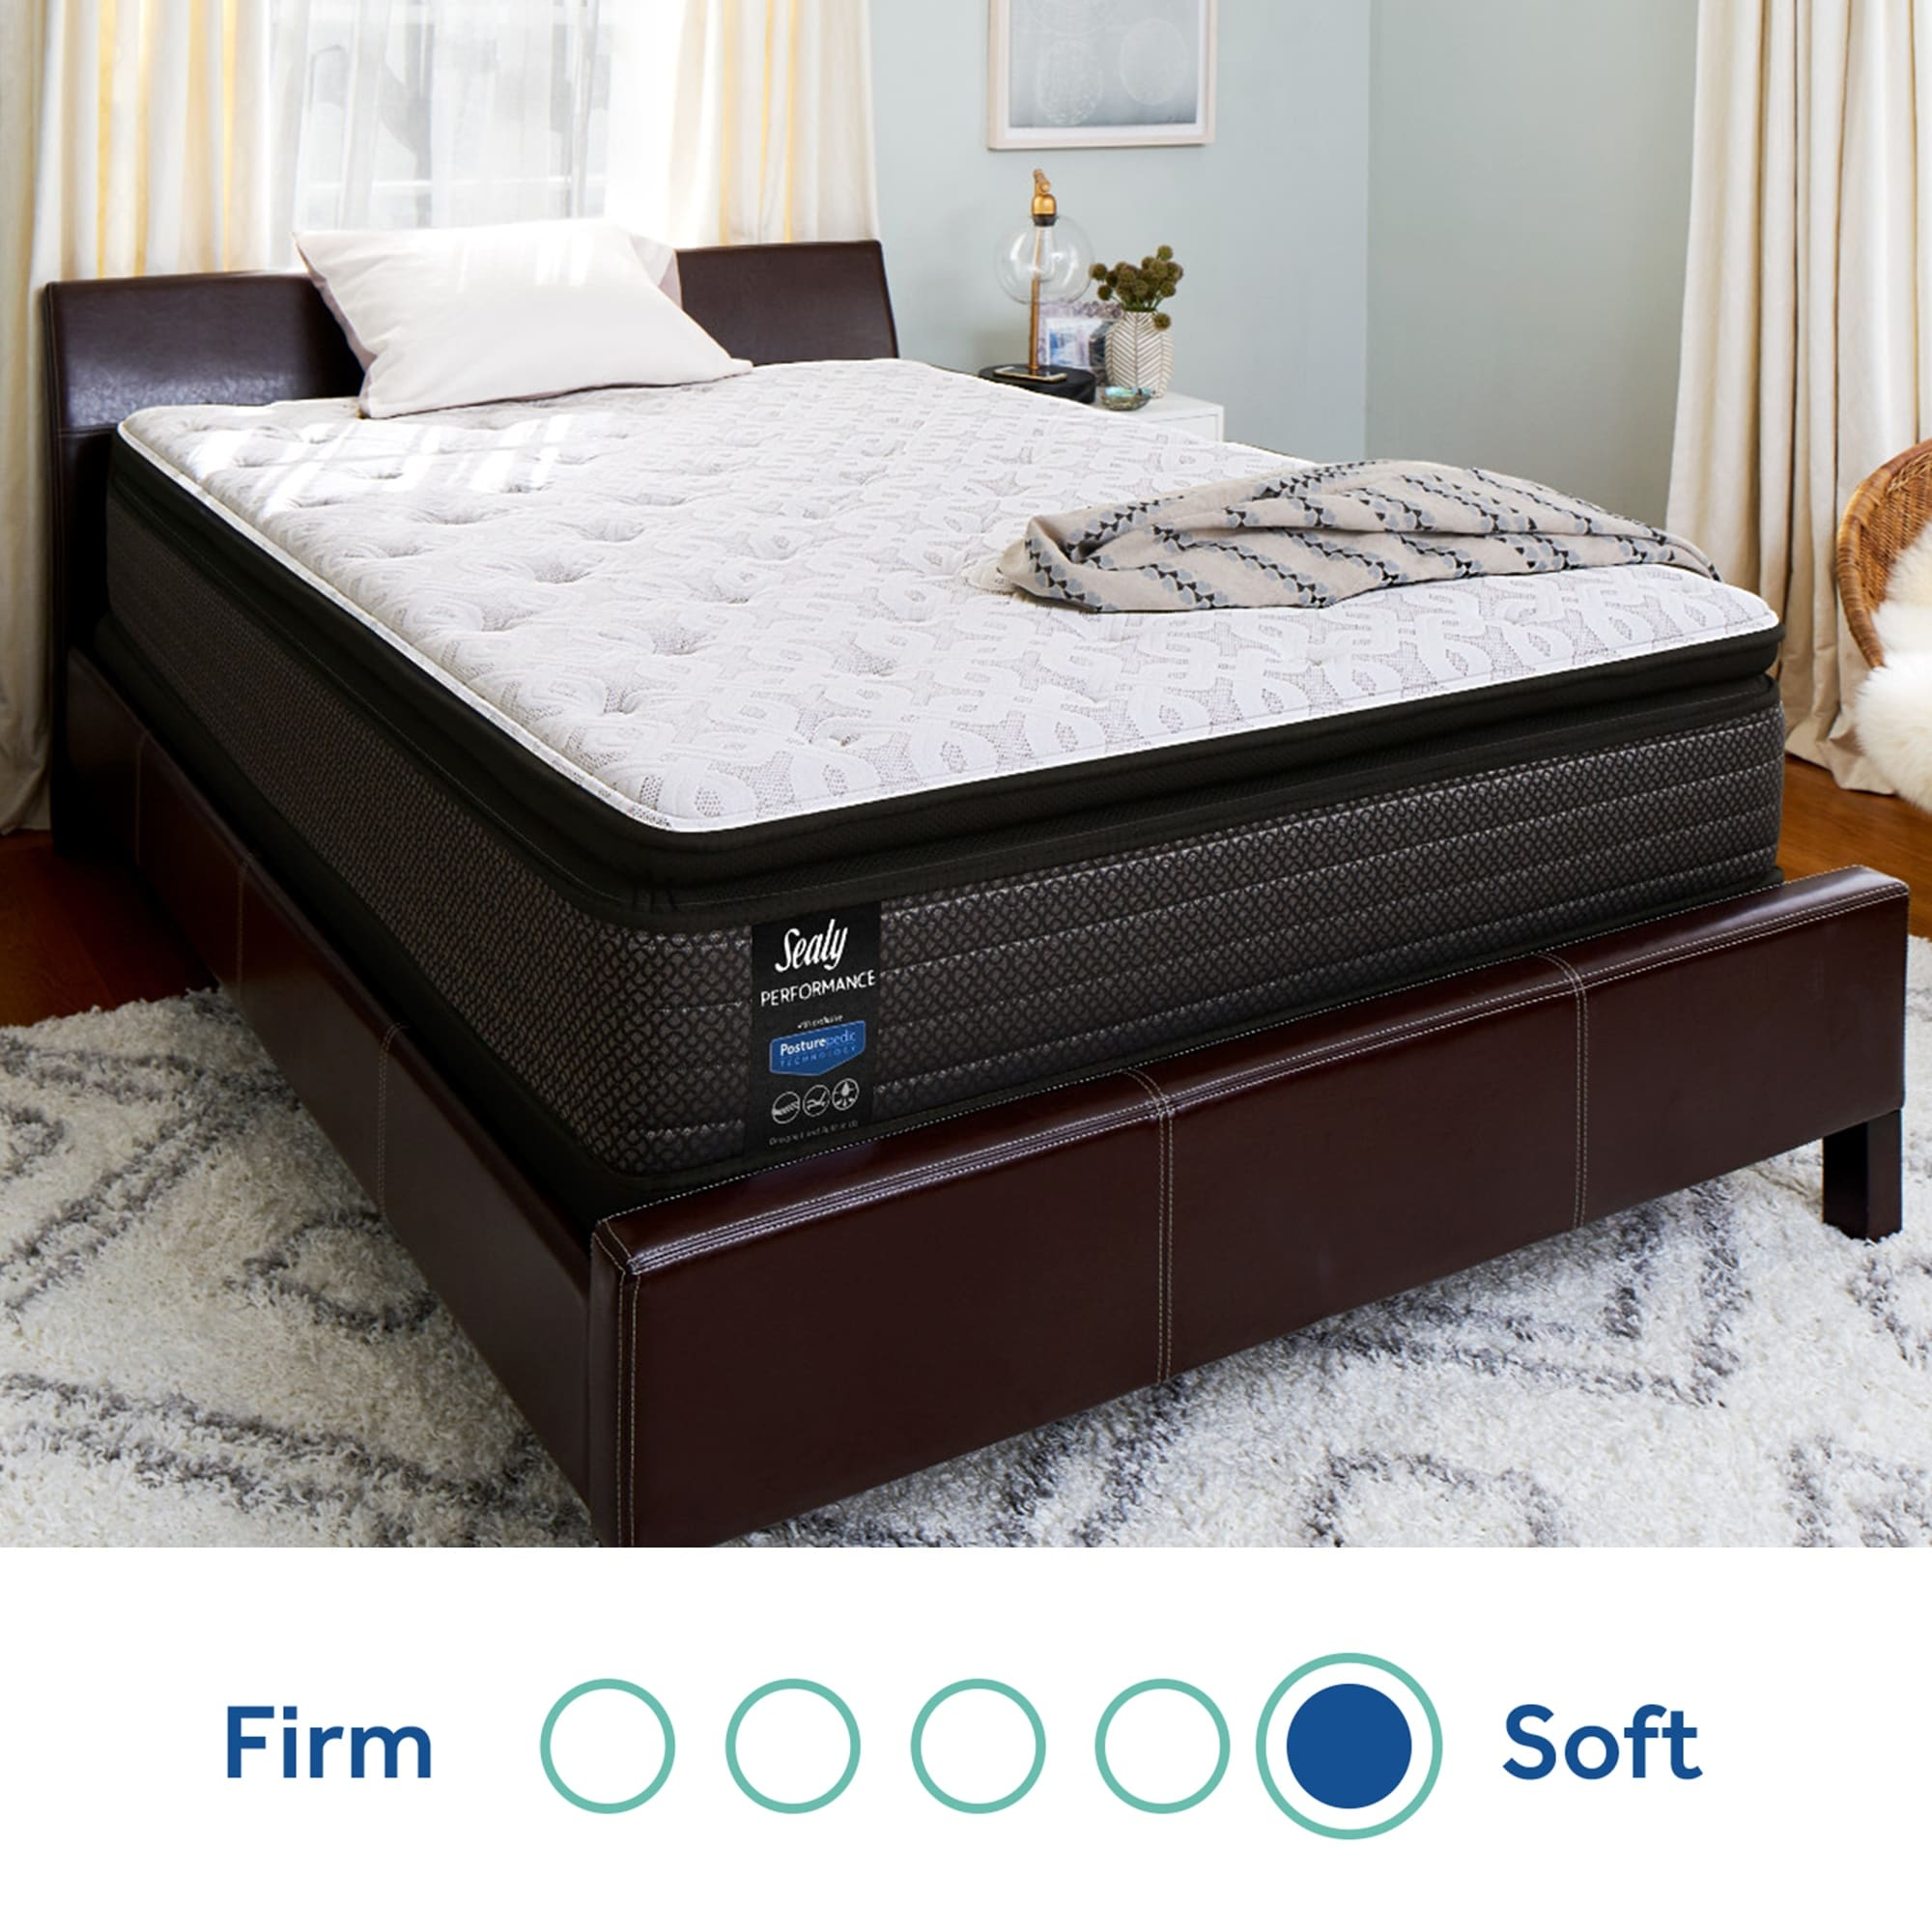 Sealy Response Performance 14 Inch Plush Pillow Top Mattress On Sale Overstock 21659464